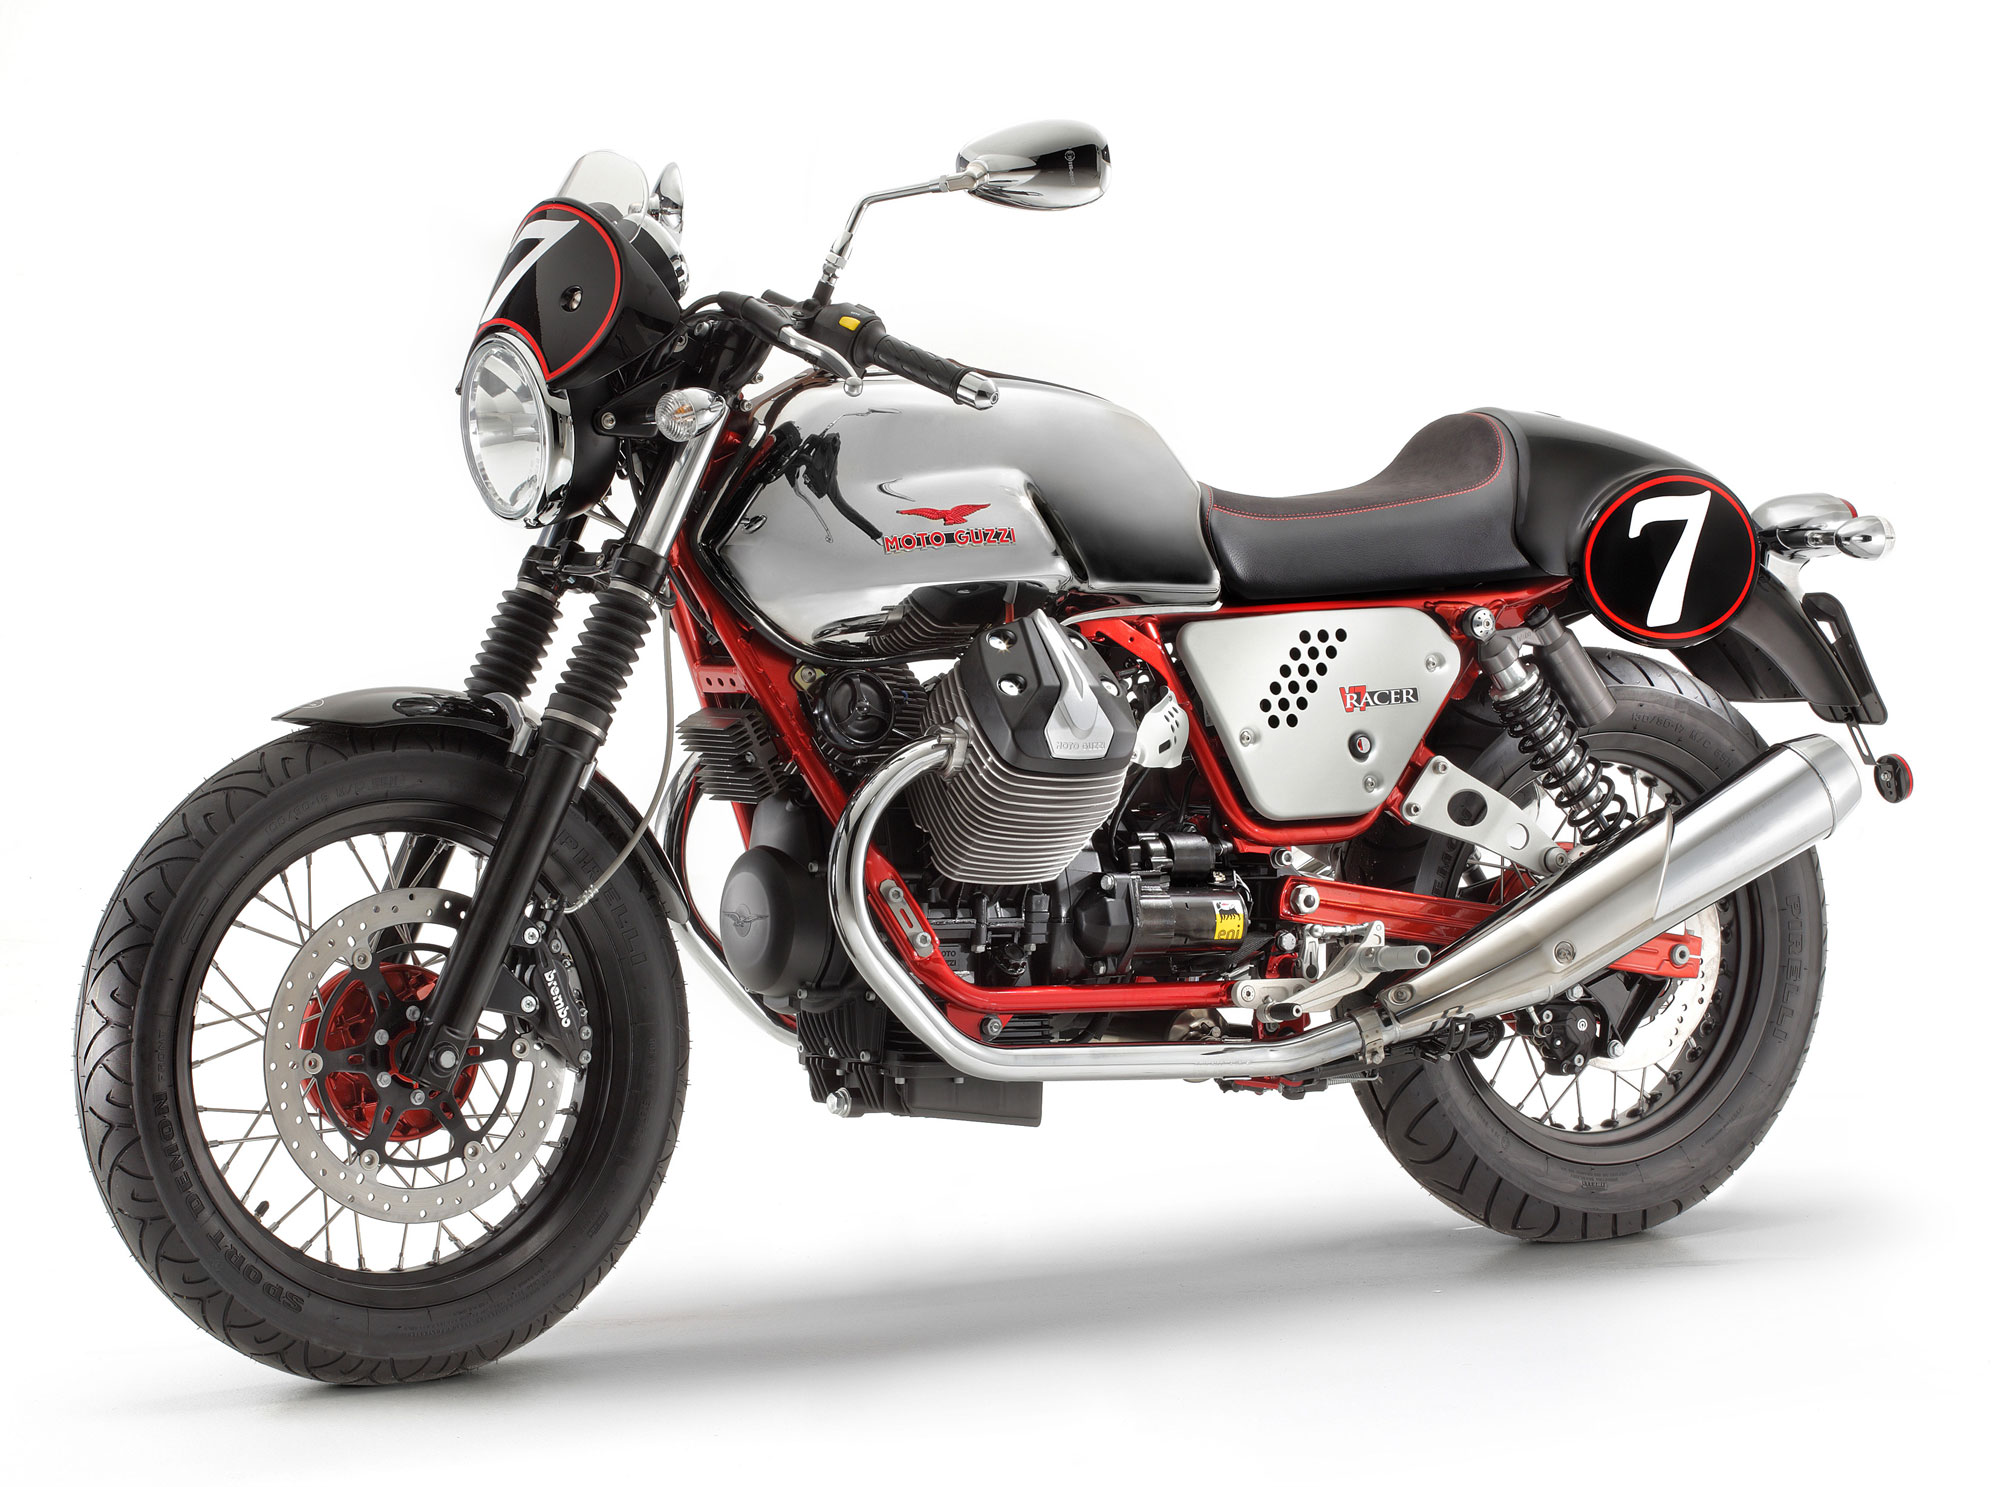 Moto Guzzi V7 Racer Limited Edition images #109590